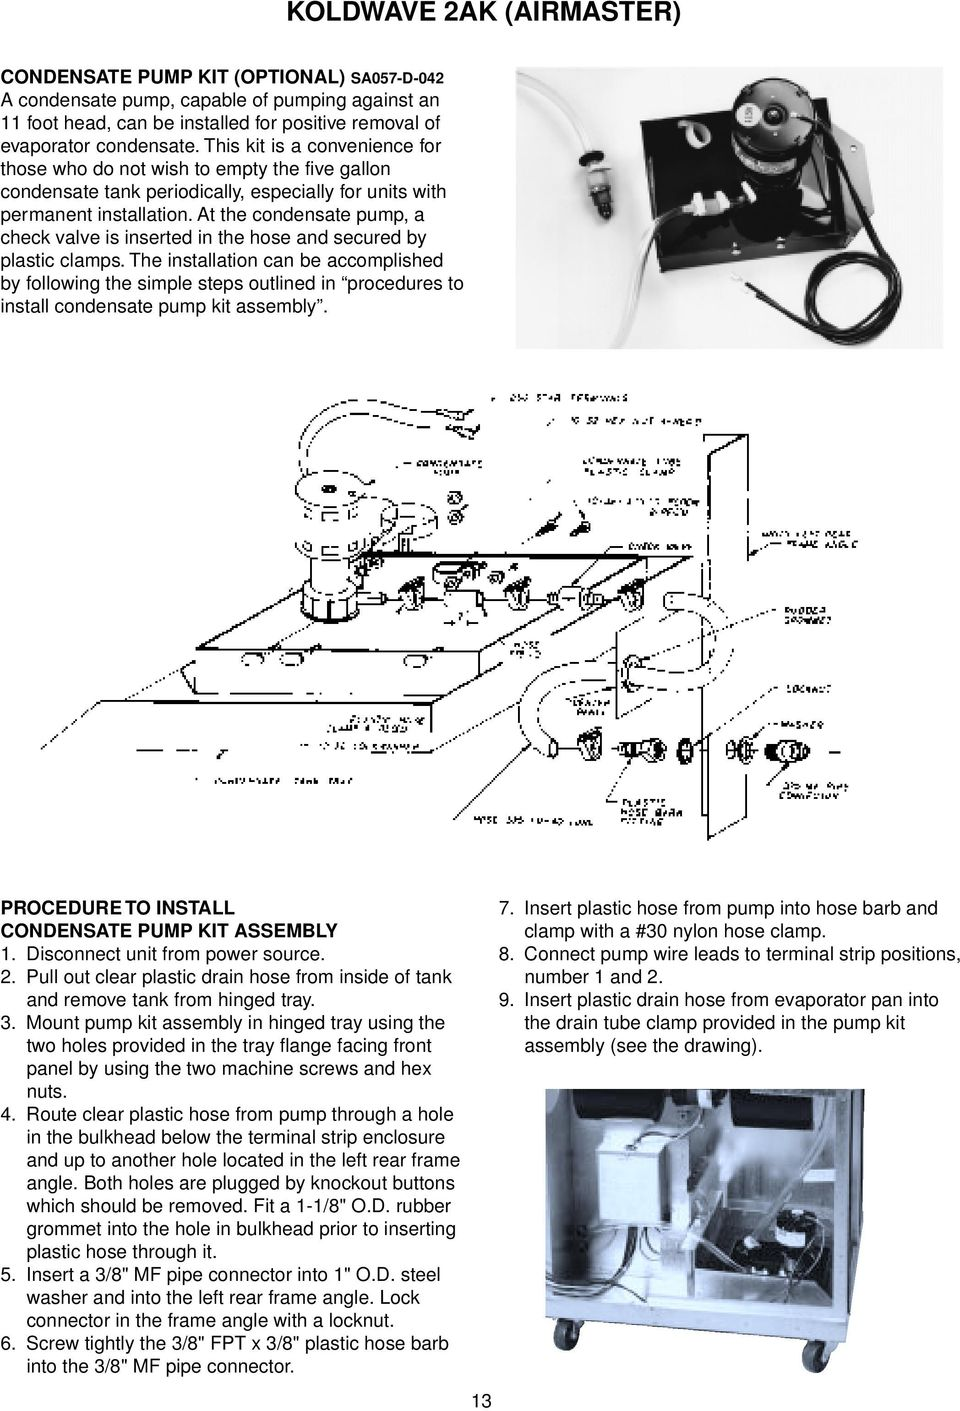 Cleaner Pump Wiring Diagram Find Image Into On Condensate Pump Wiring